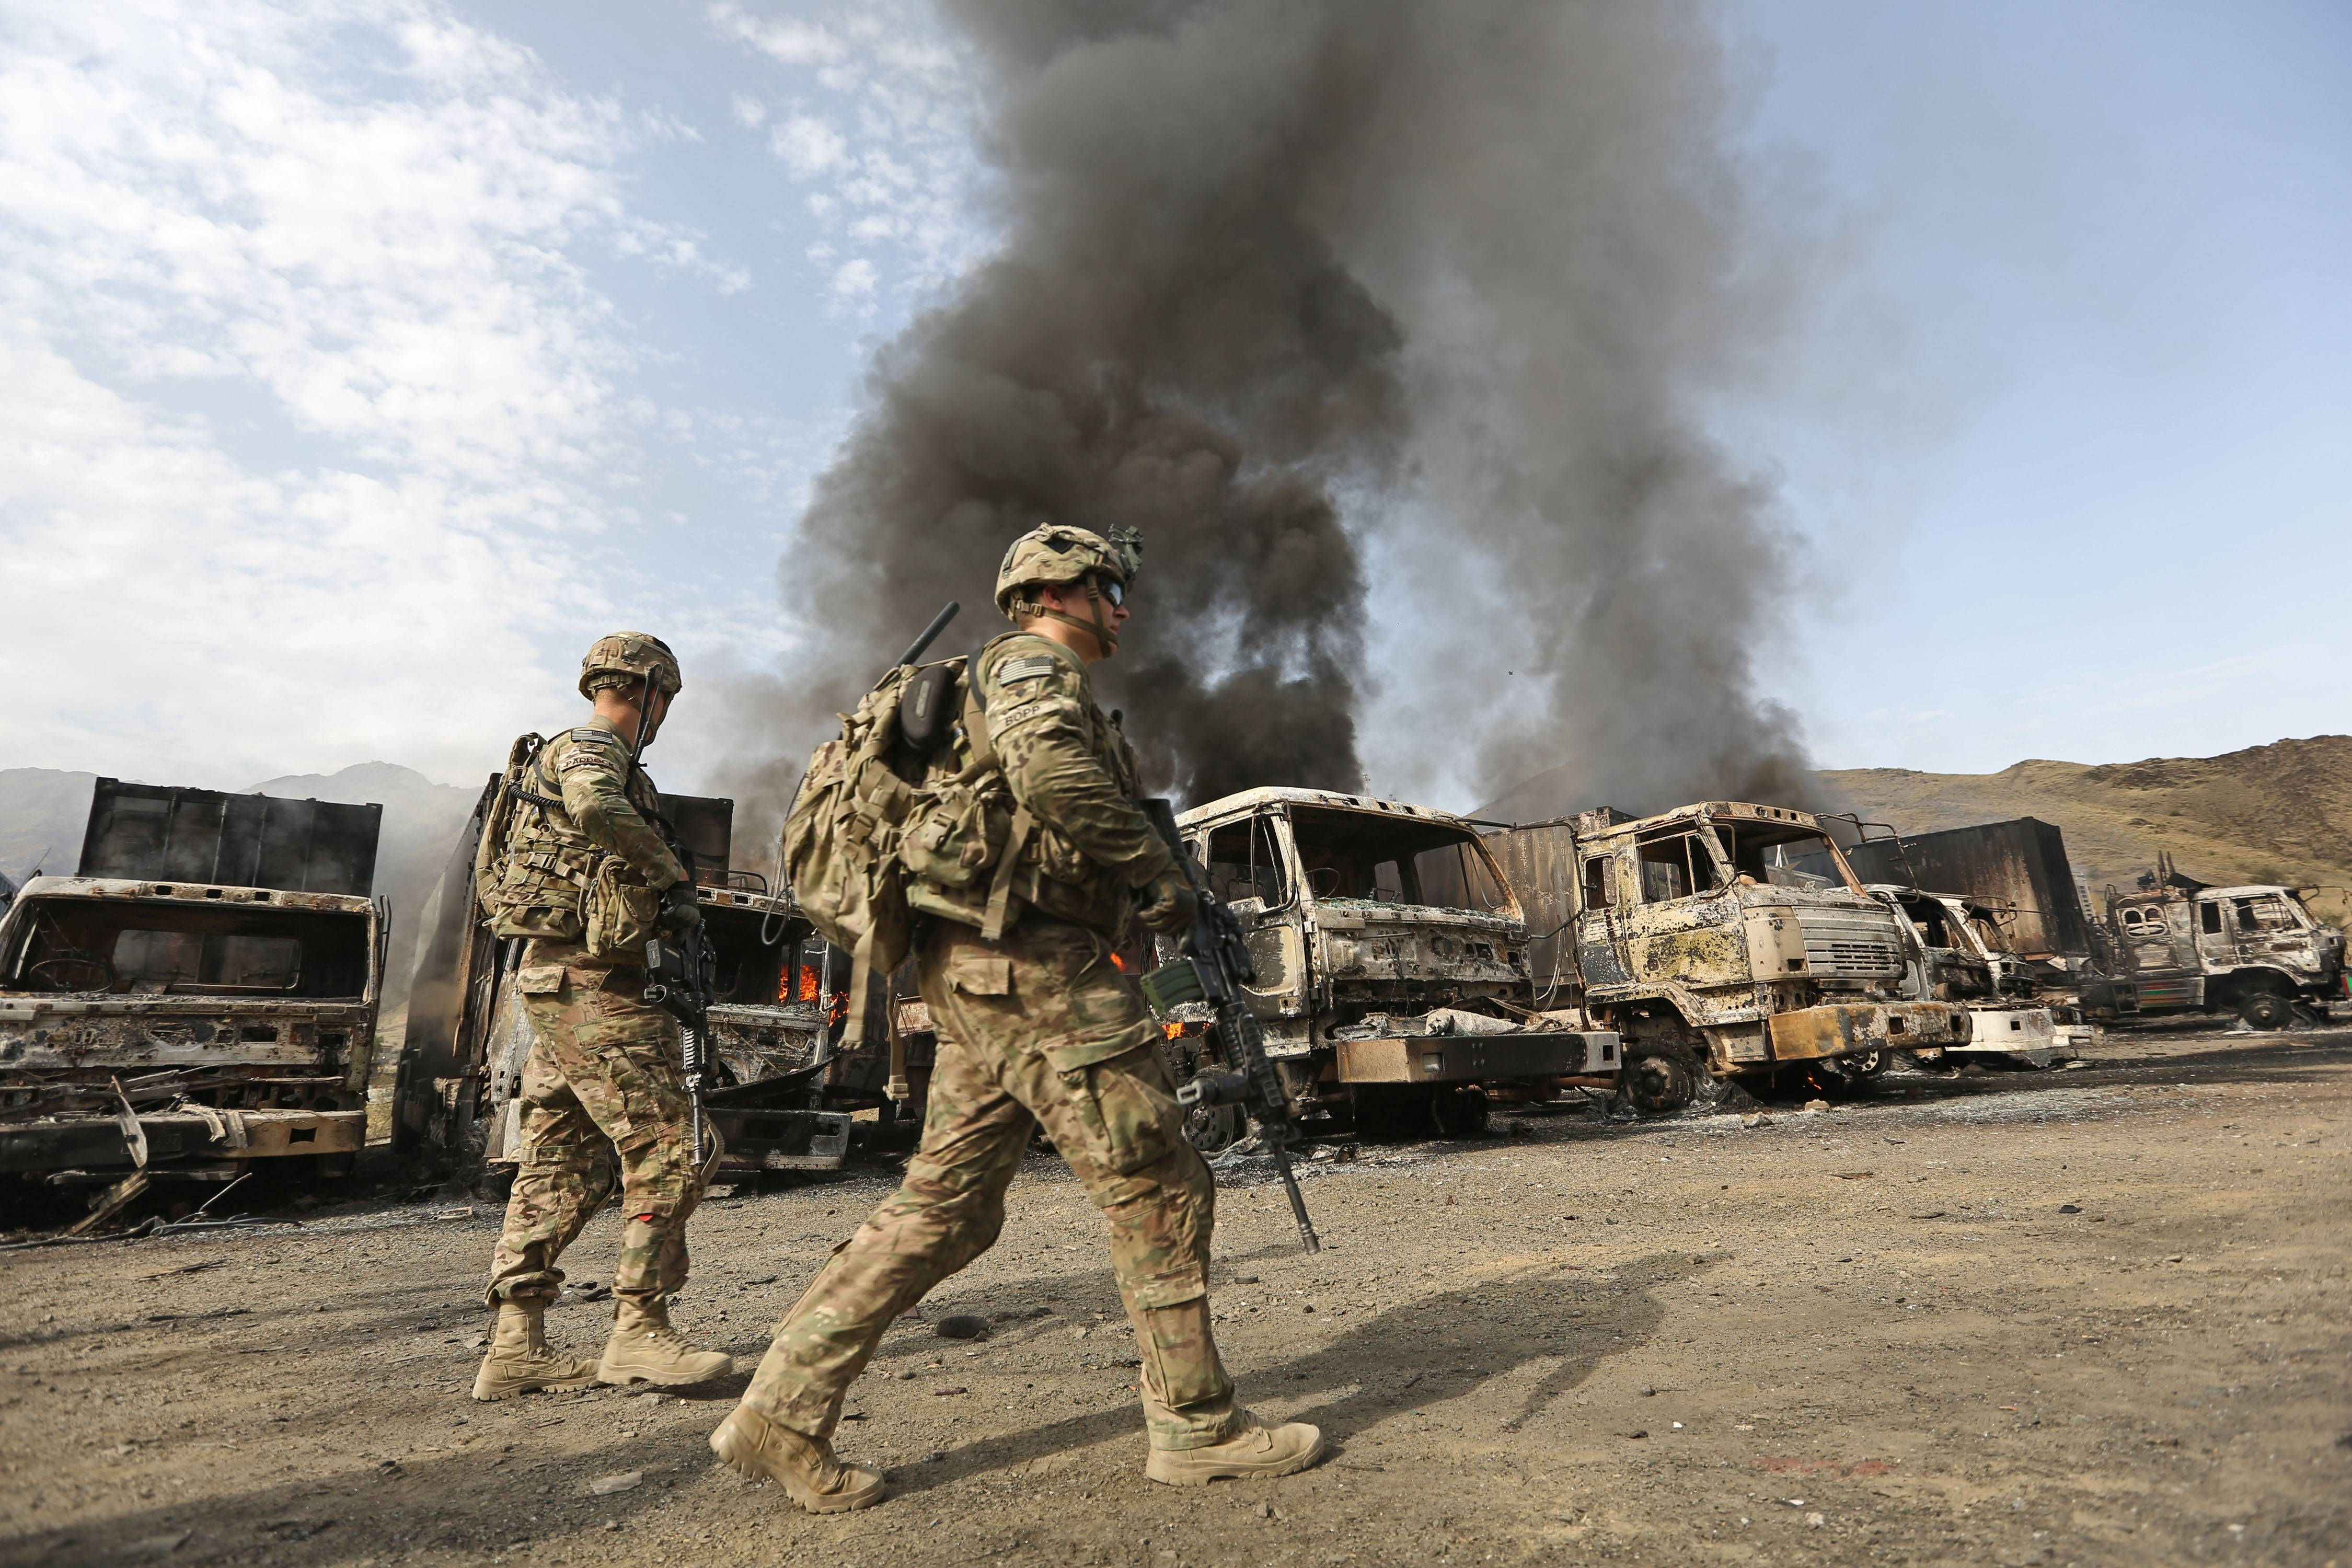 U.S. soldiers investigate the scene of an suicide attack Thursday in the Torkham, Nangarhar province, Afghanistan. Senior Obama administration officials insist Afghanistan is not Iraq, with a population far more receptive to a continued U.S. presence and the promise of a new unity government.